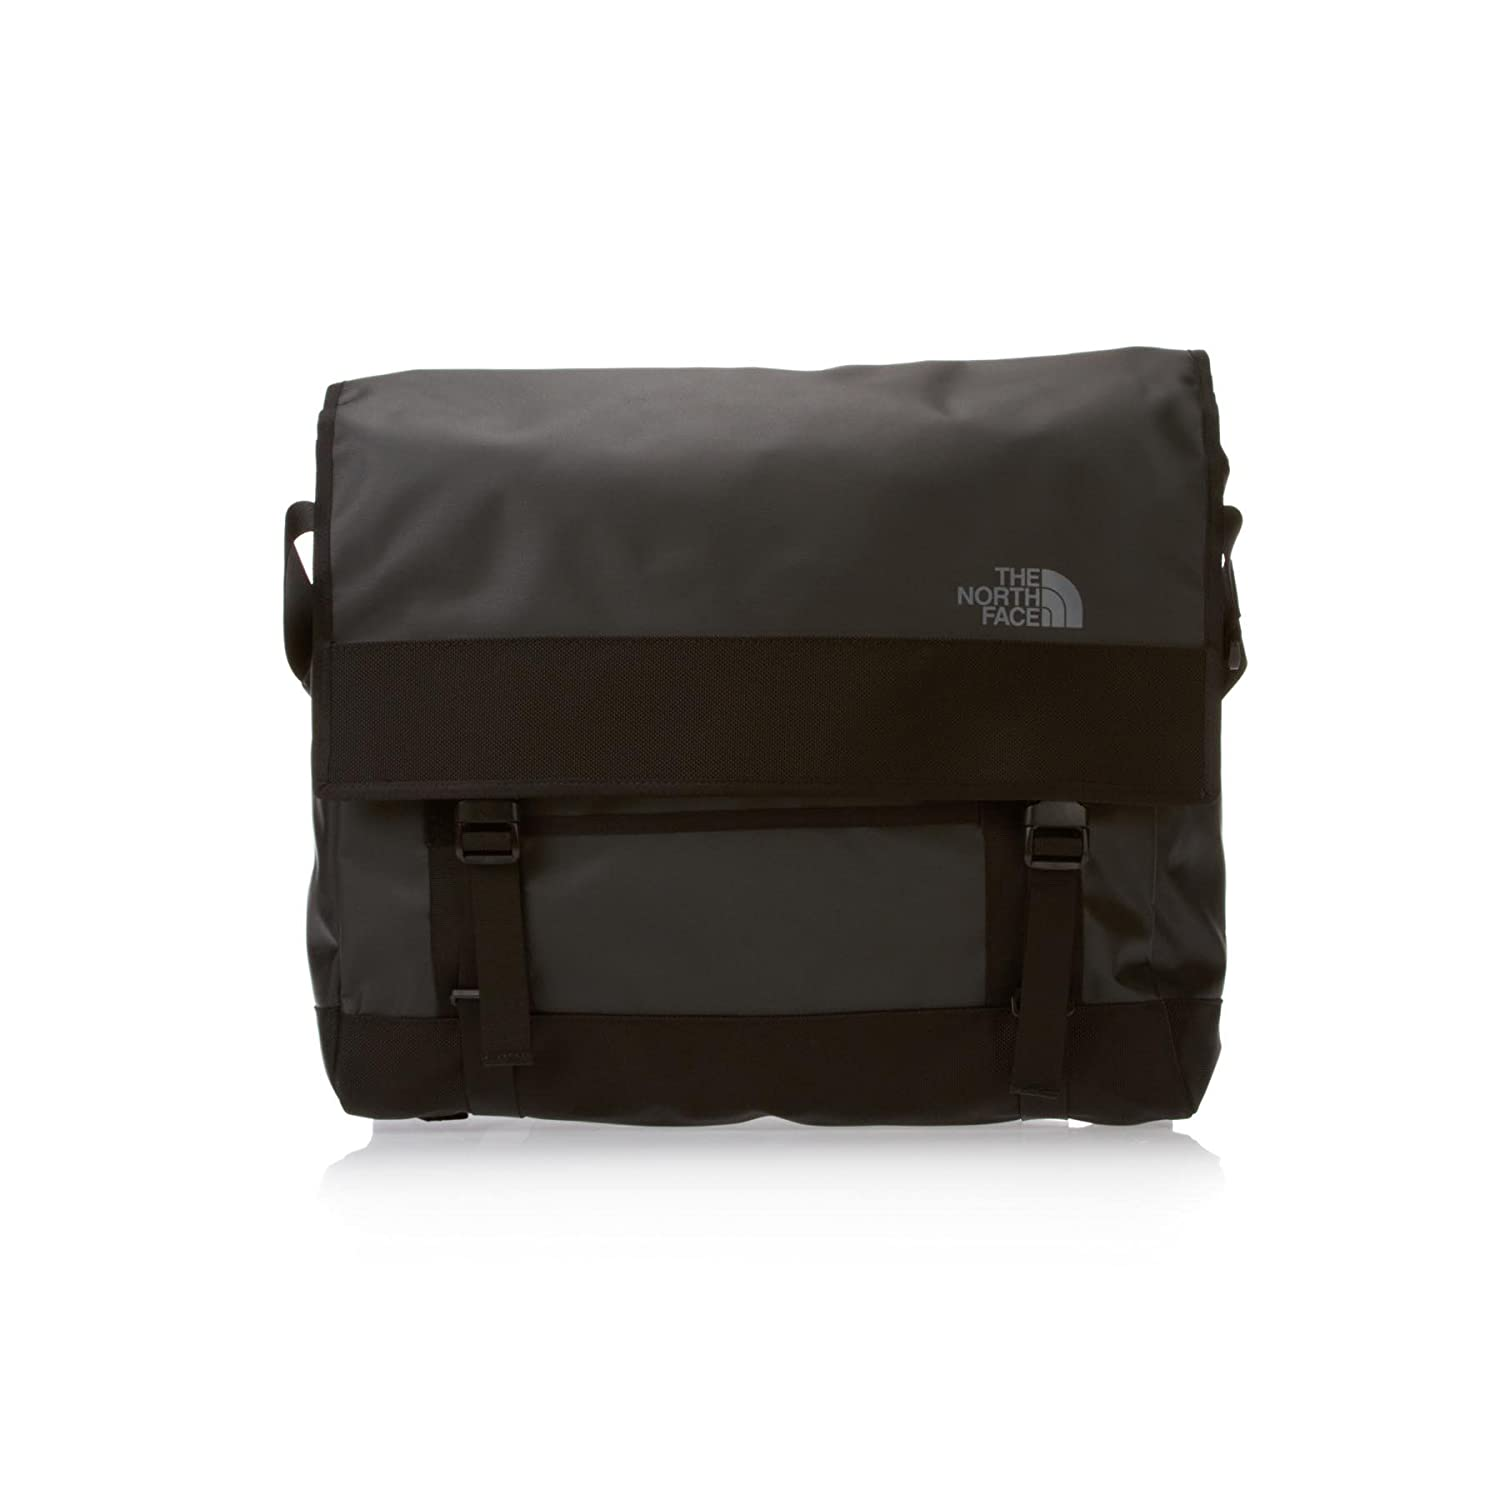 The North Face Bolso bandolera Base Camp Messenger negro - tnf black T0ASTZJK3